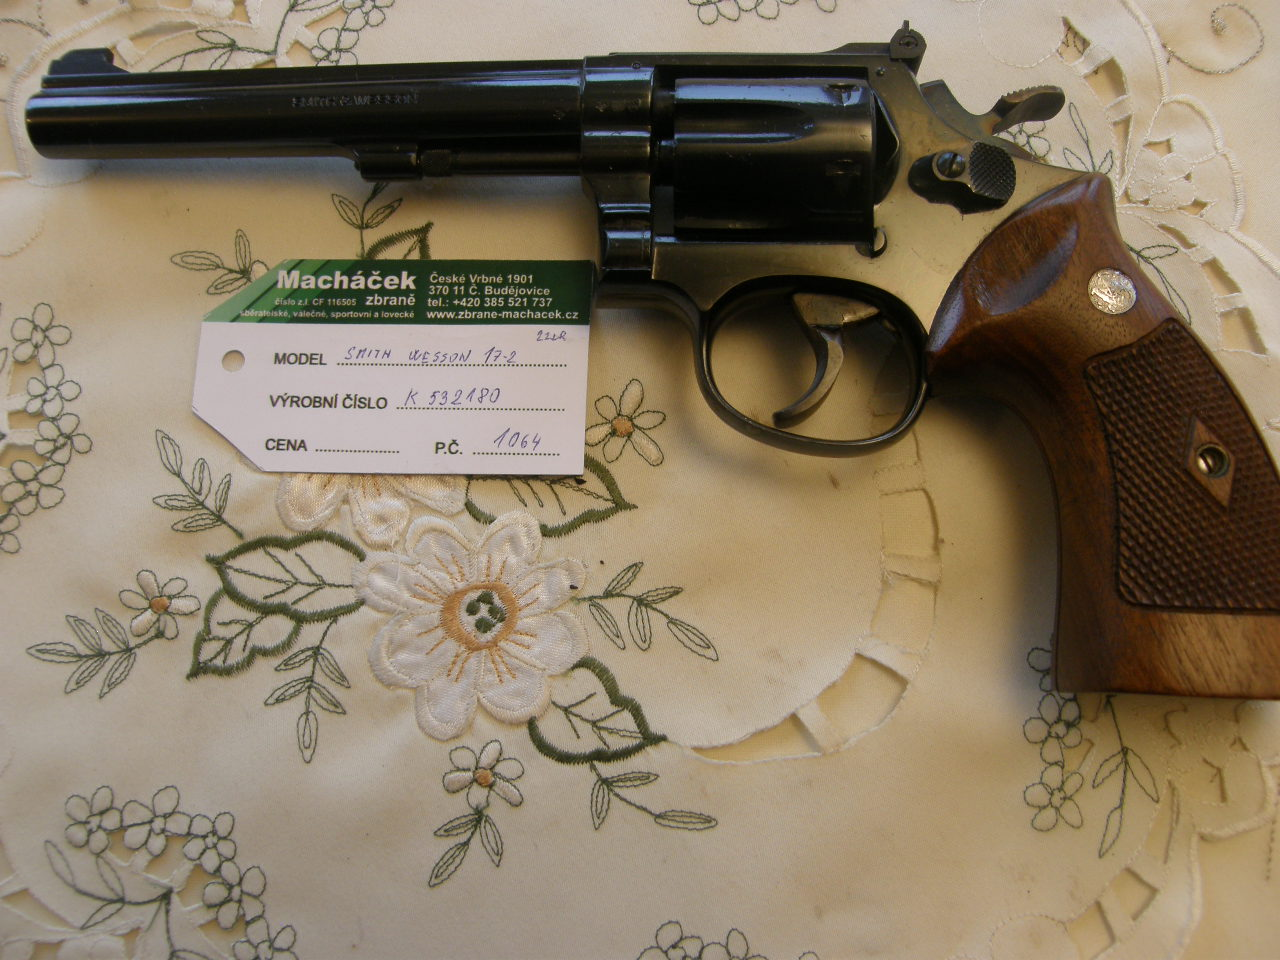 Revolver Smith Wesson Mod. 17 v.č. K 532180 r. 22 Lr.